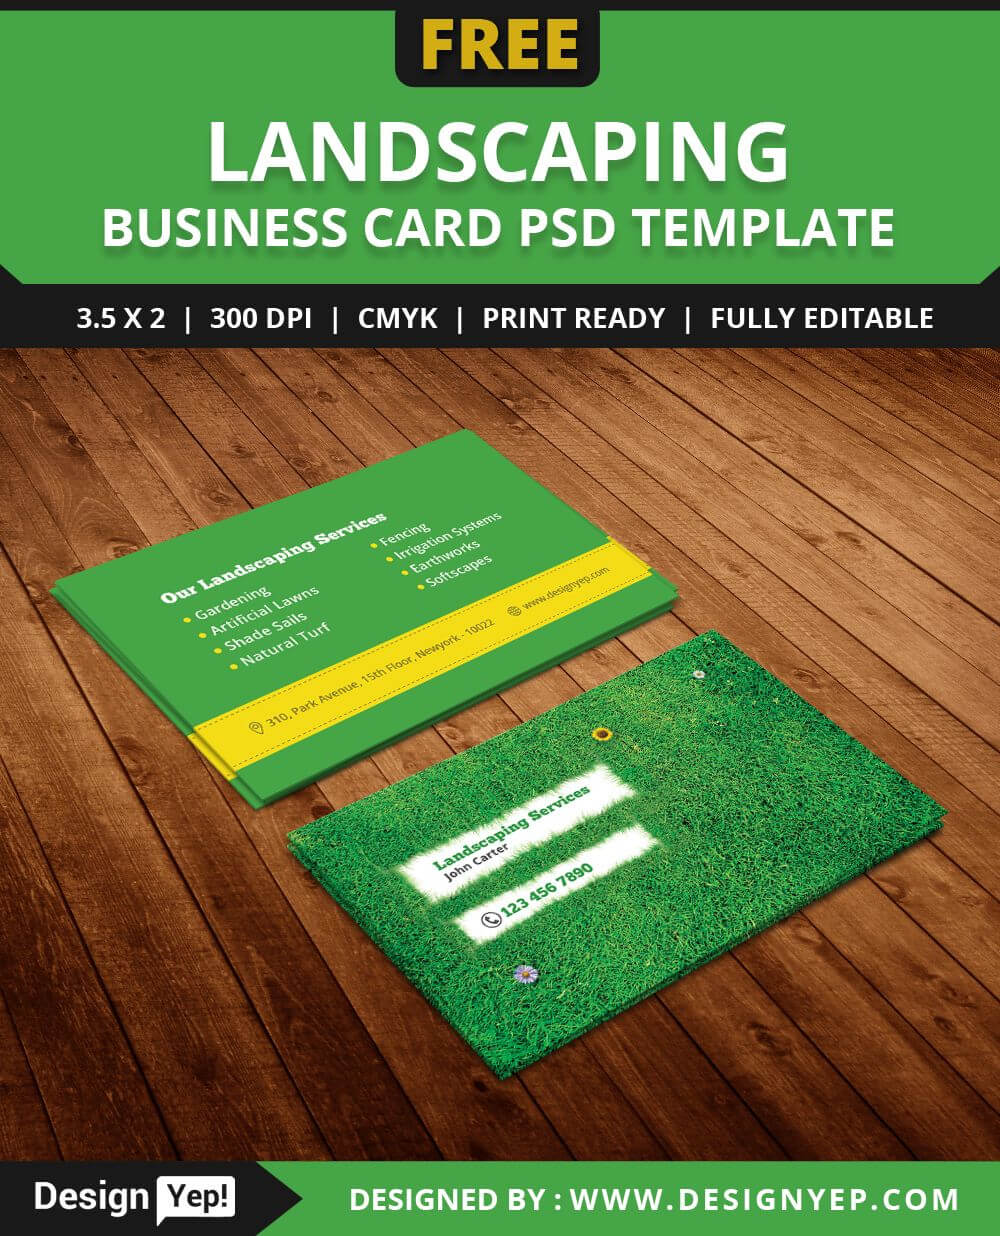 Free Landscaping Business Card Template Psd | Free Business With Regard To Gardening Business Cards Templates